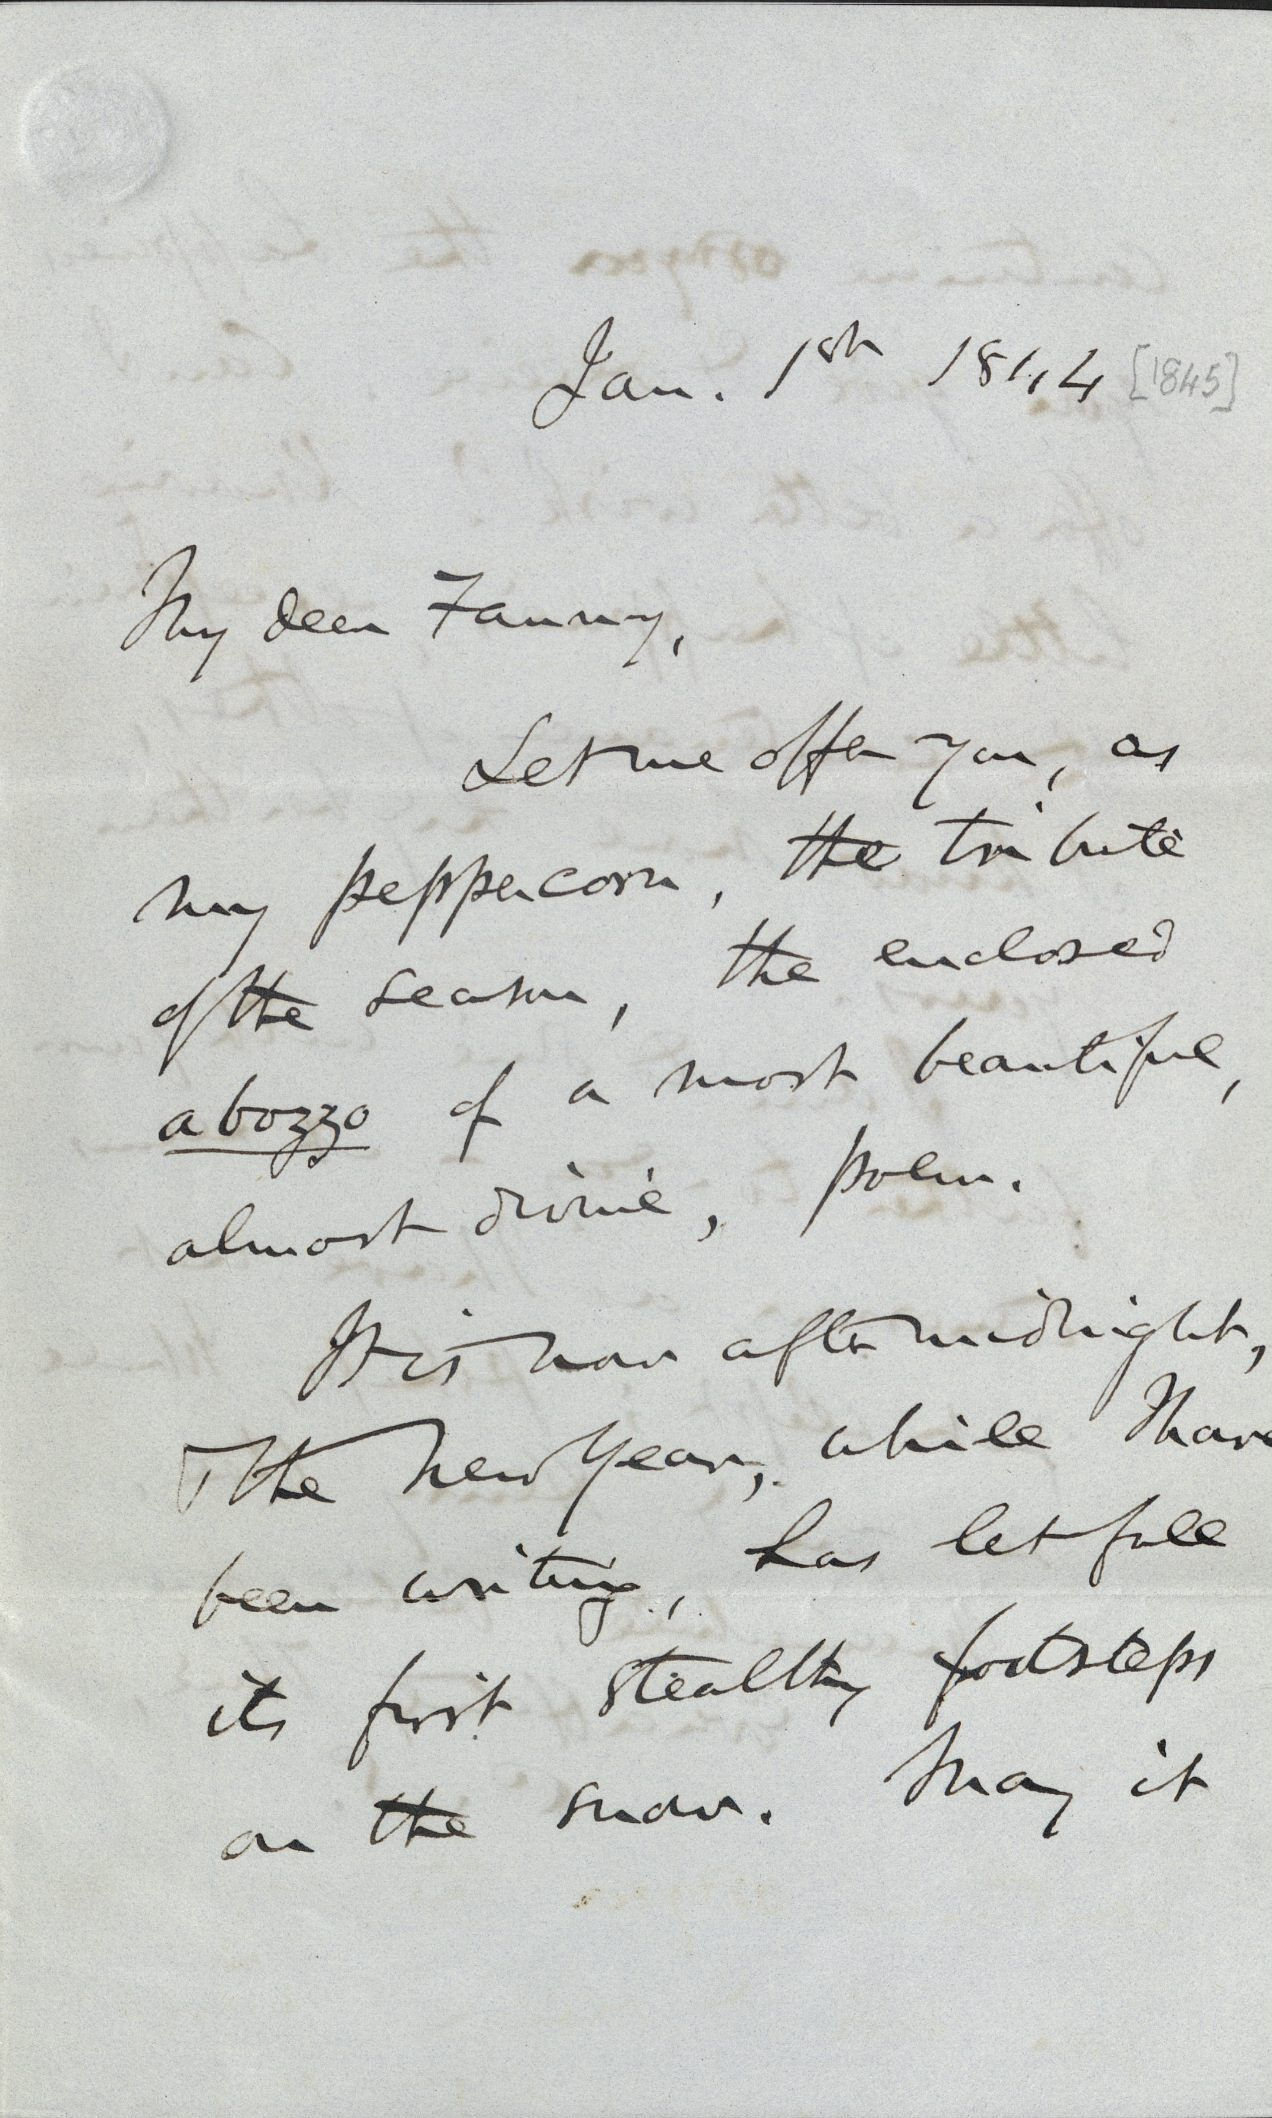 Autograph letter from Charles Sumner to Fanny Longfellow, January 1st, 1844 [i.e., 1845] - Trustees of the Longfellow House Trust, 1976